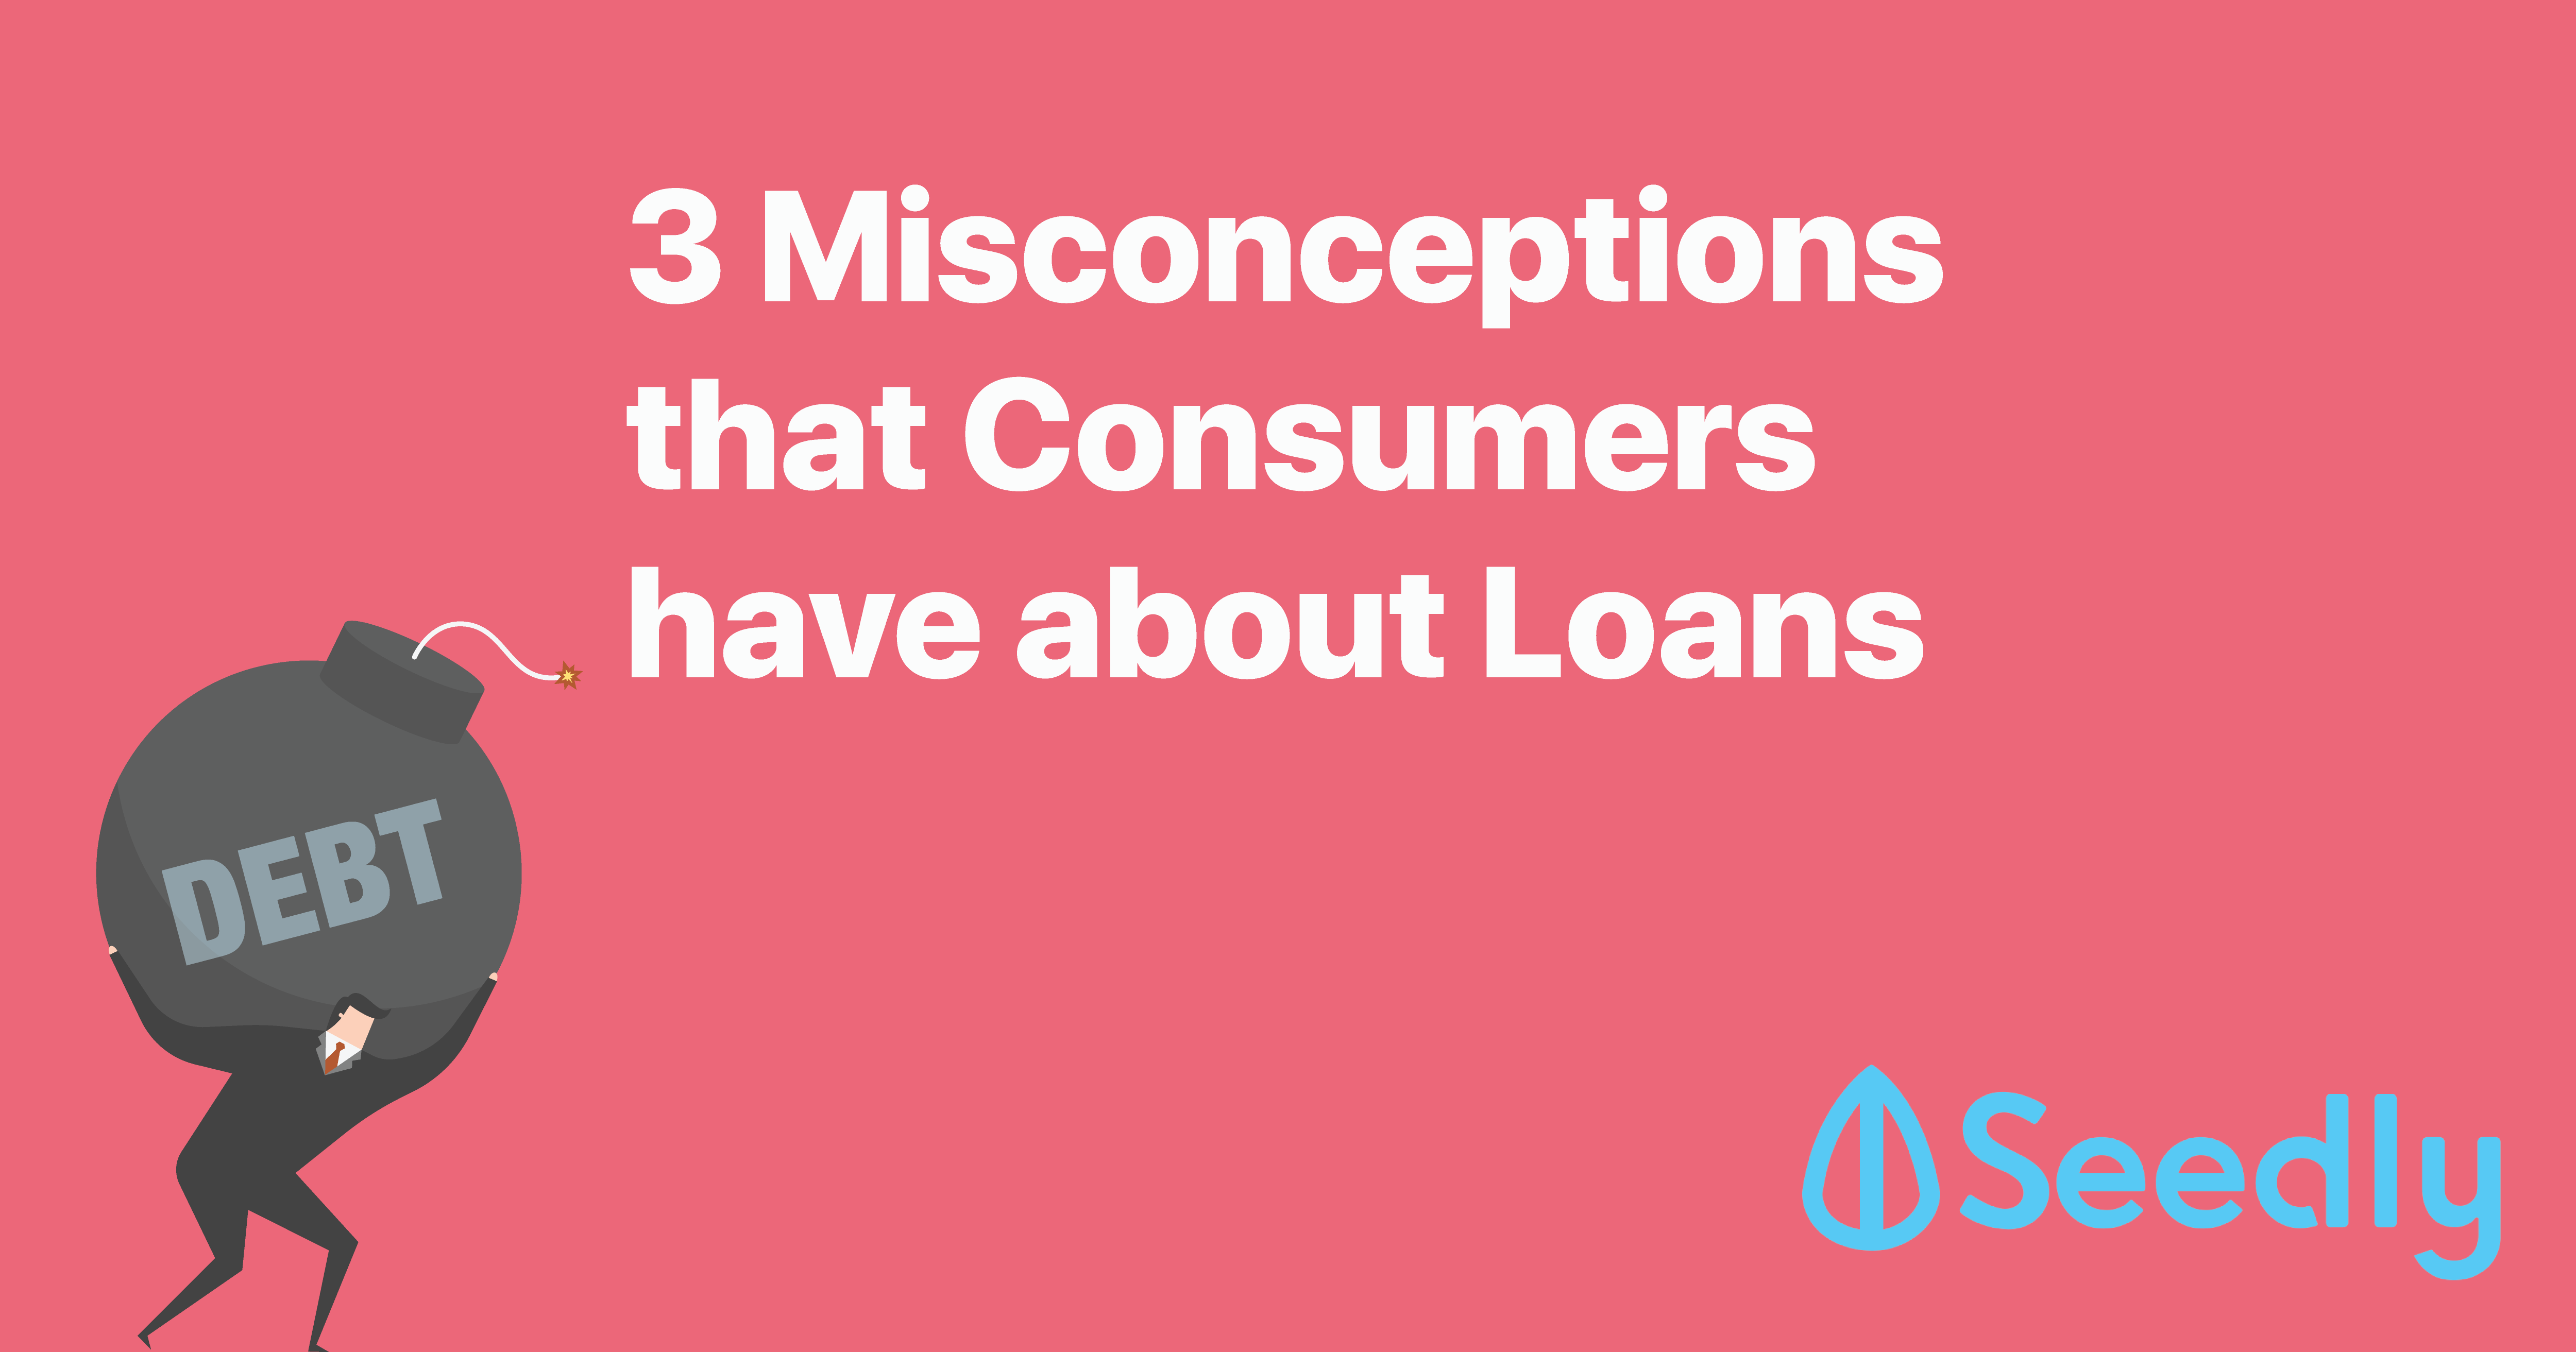 3 Misconceptions that Consumers have about Loans